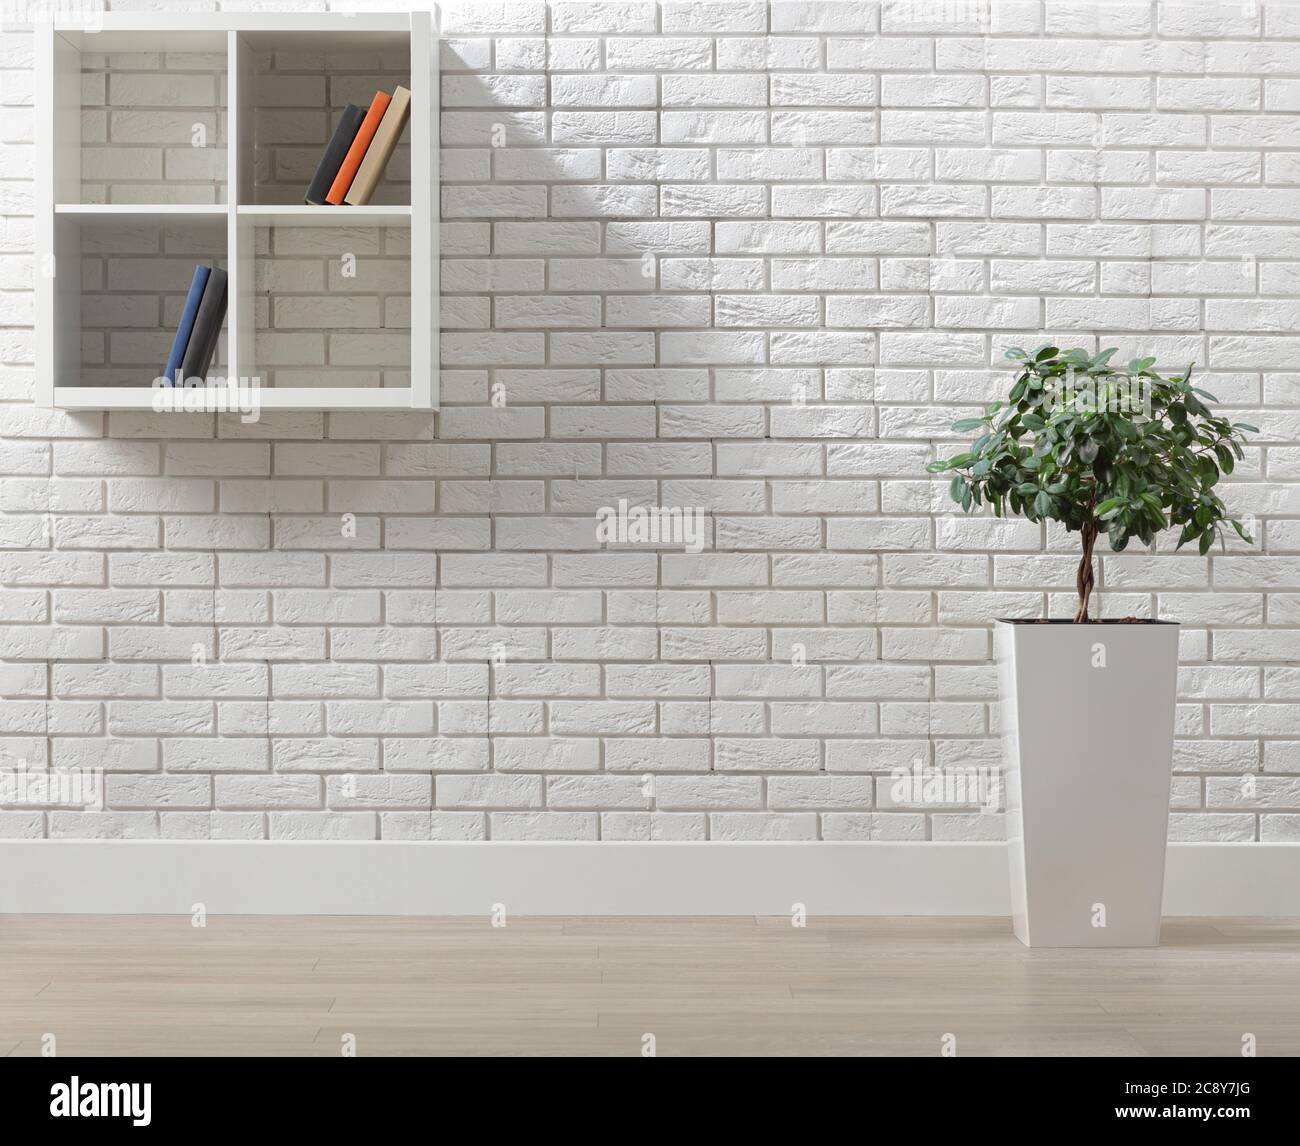 Room Interior With A White Brick Wall A Plant And Shelves With Books Stock Photo Alamy